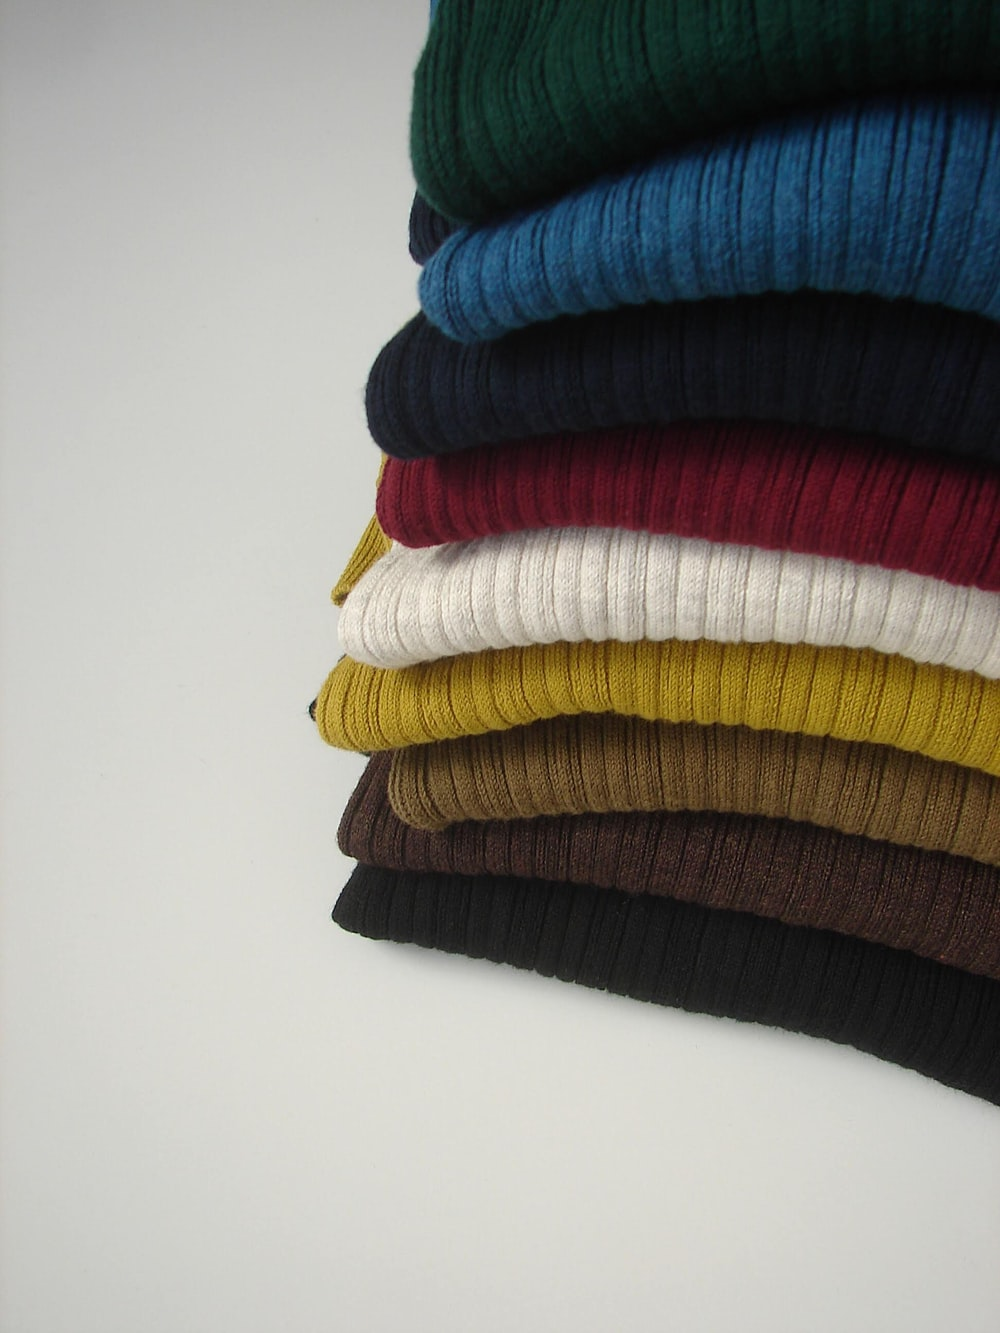 assorted-colored textiles